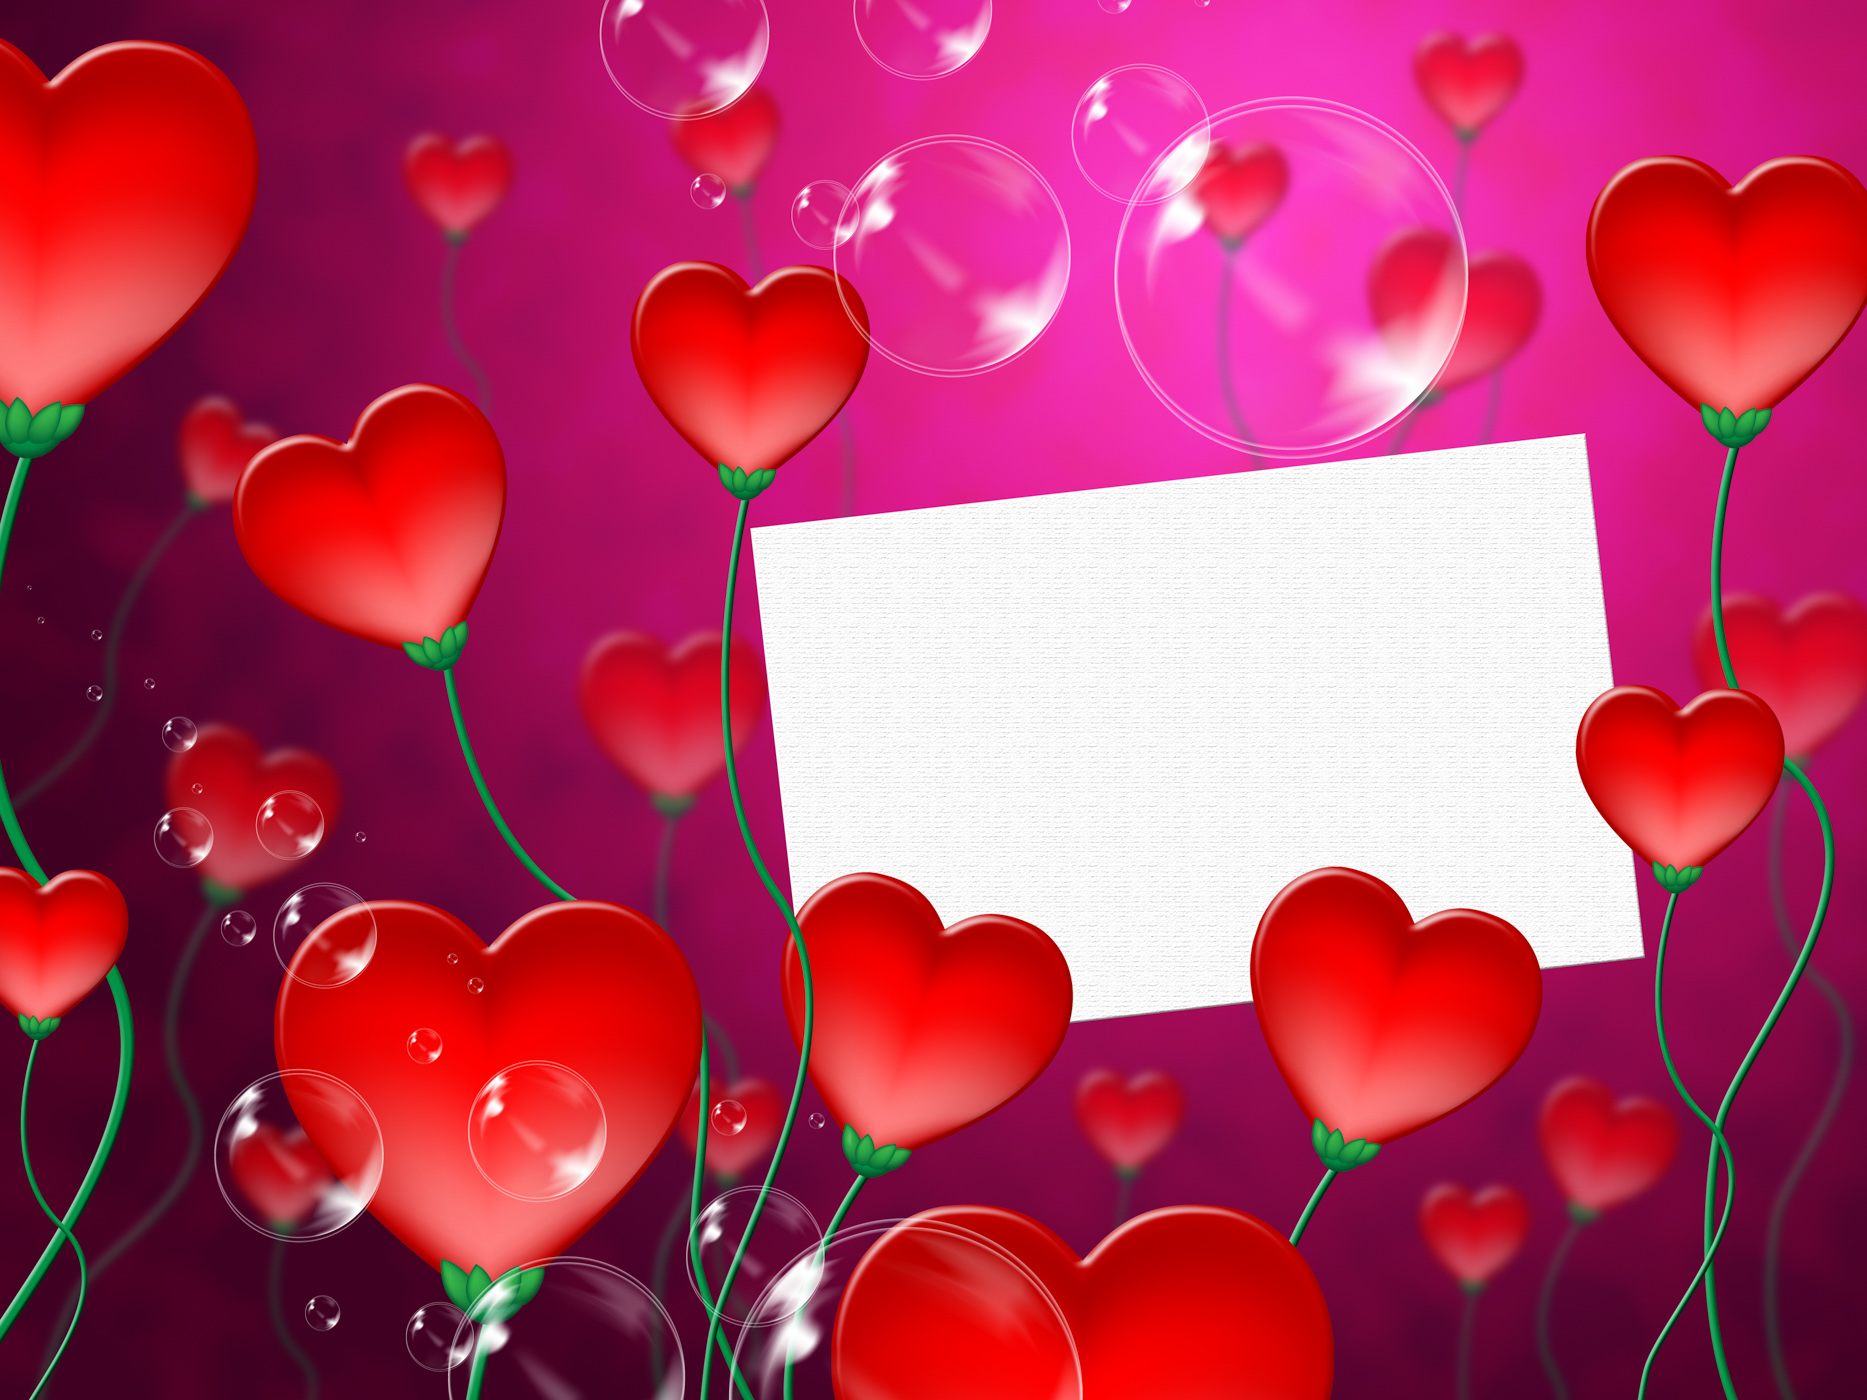 Heart Message Means Valentine Day And Correspond, Affection, Loving, Valentineday, Valentine, HQ Photo